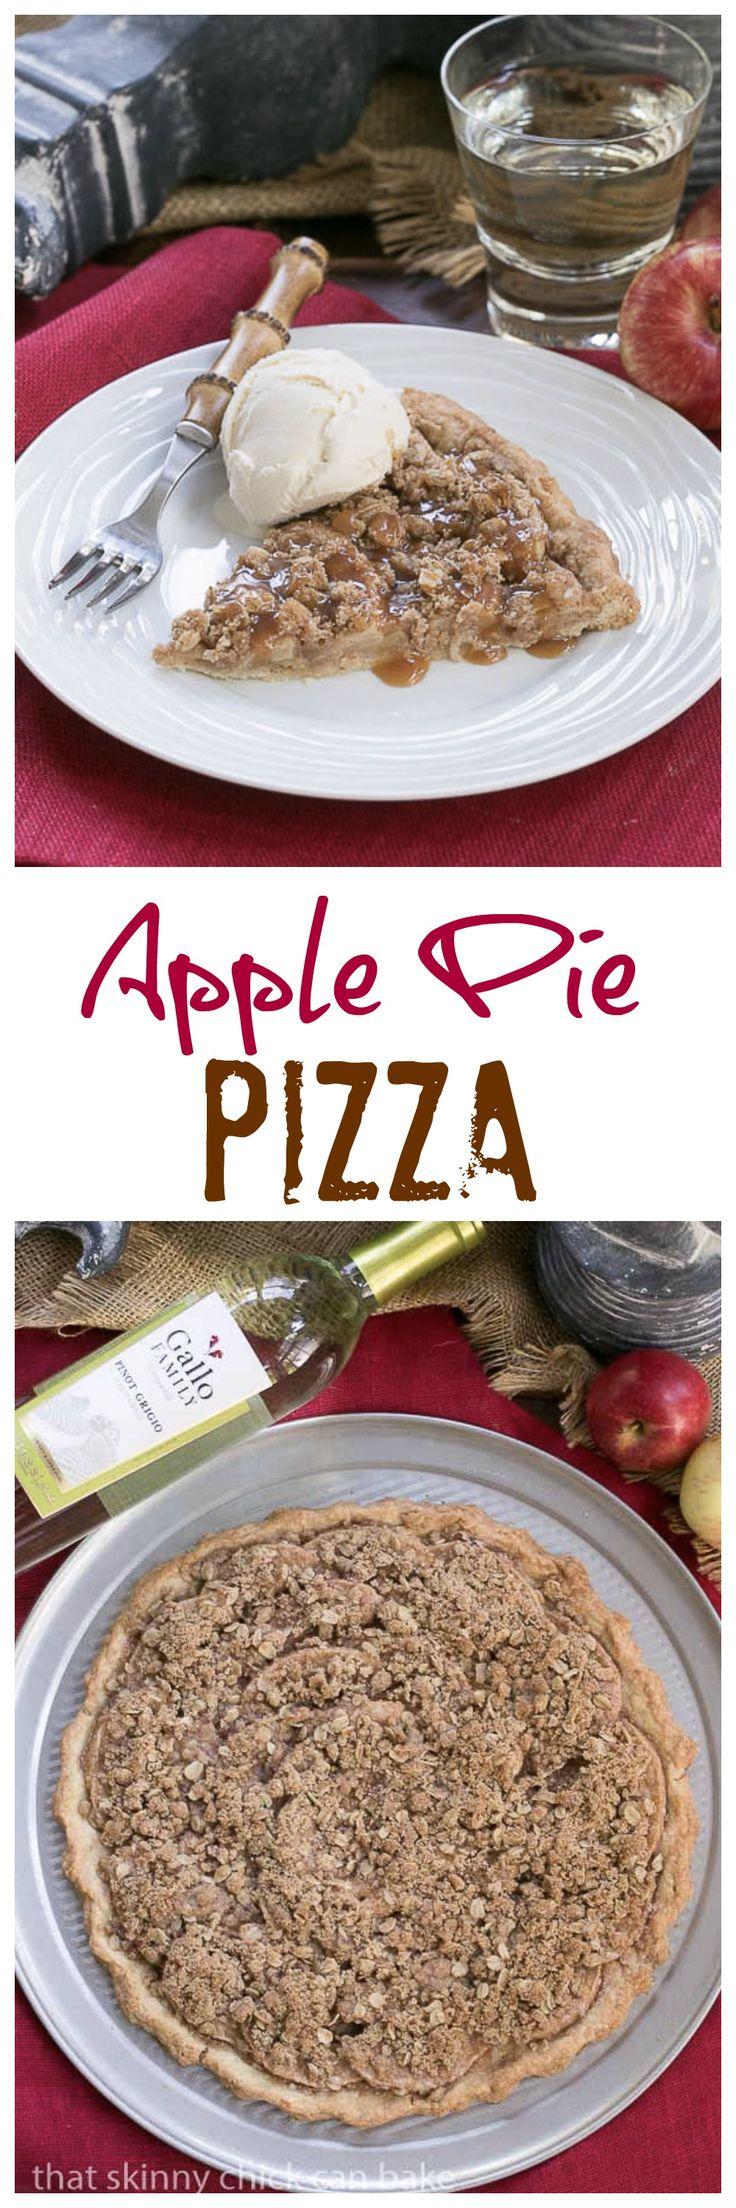 Apple Pie Pizza | A dessert pizza made with a pastry crust, spiced apples, streusel and drizzled with caramel @lizzydo